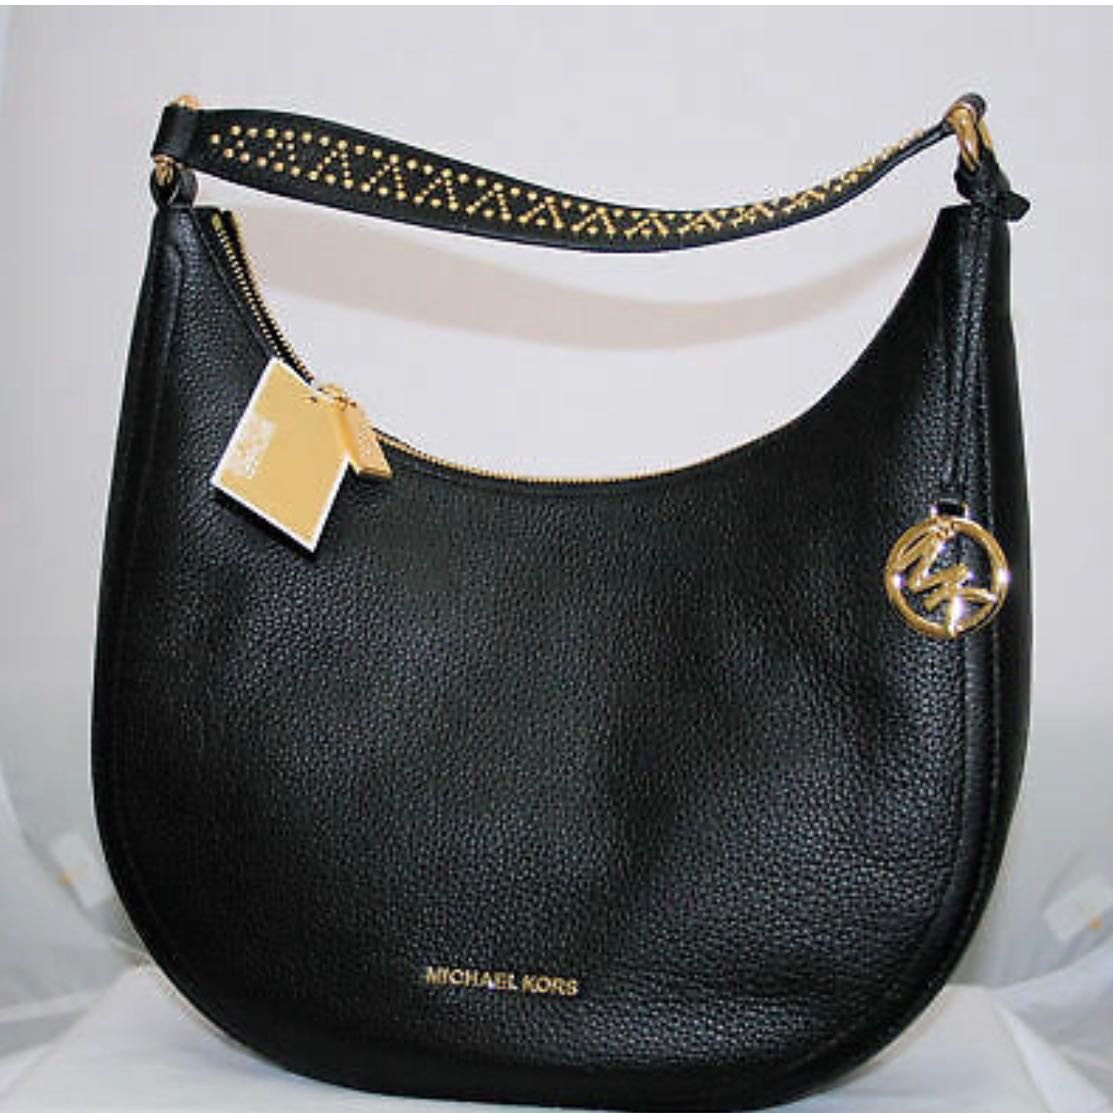 638747271121 Michael Kors Lydia Hobo Bag Black Mother's Day, Women's Fashion ...